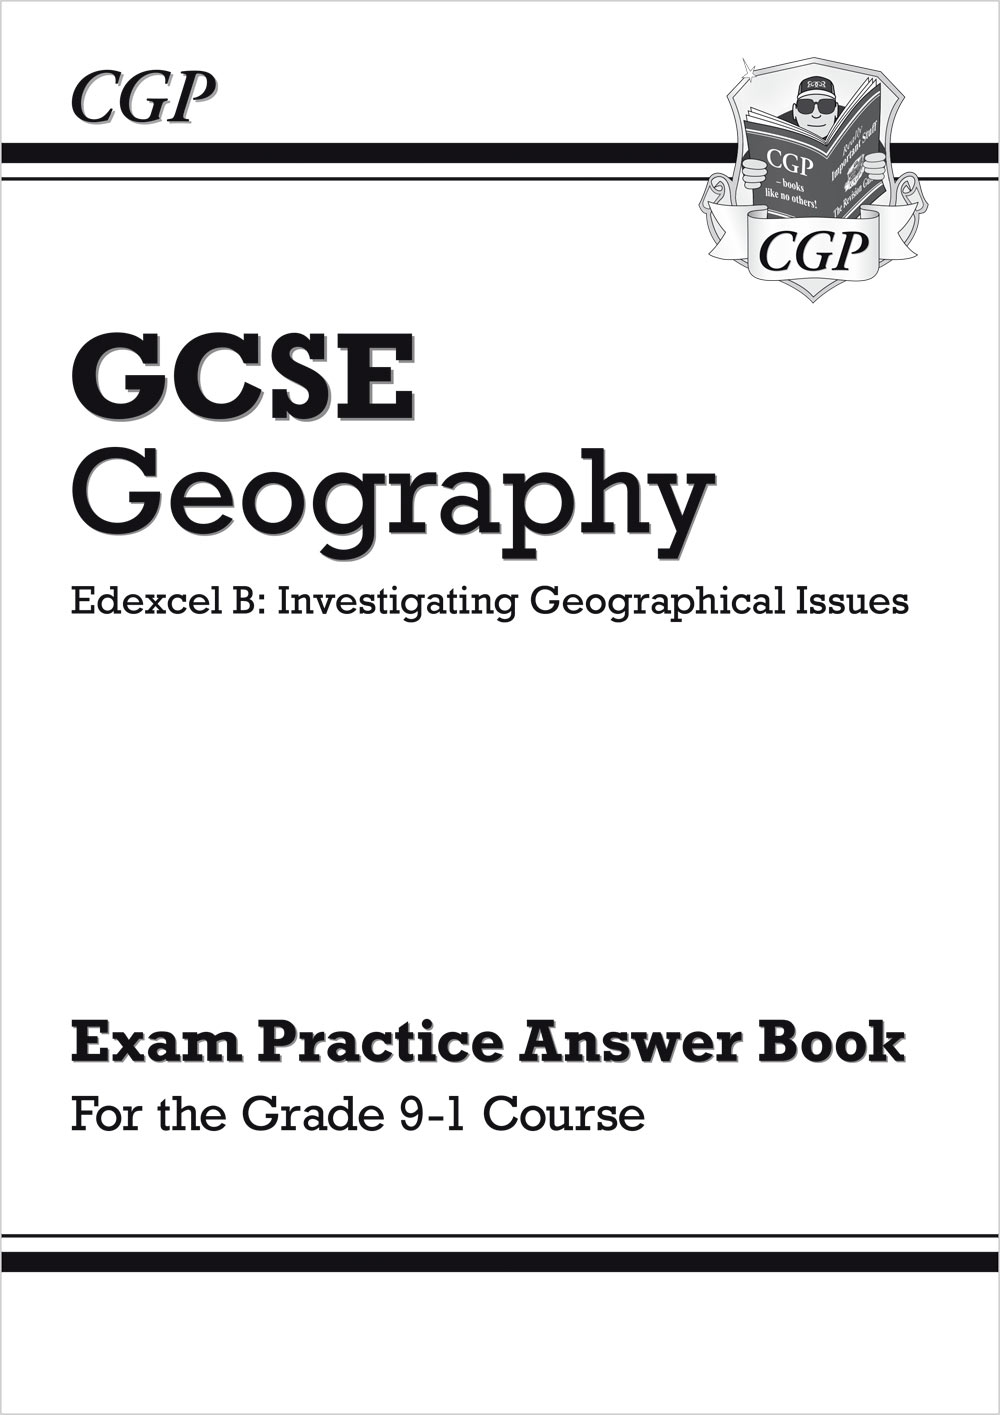 GEQA41 - Grade 9-1 GCSE Geography Edexcel B: Investigating Geographical Issues - Answers (for Workbo